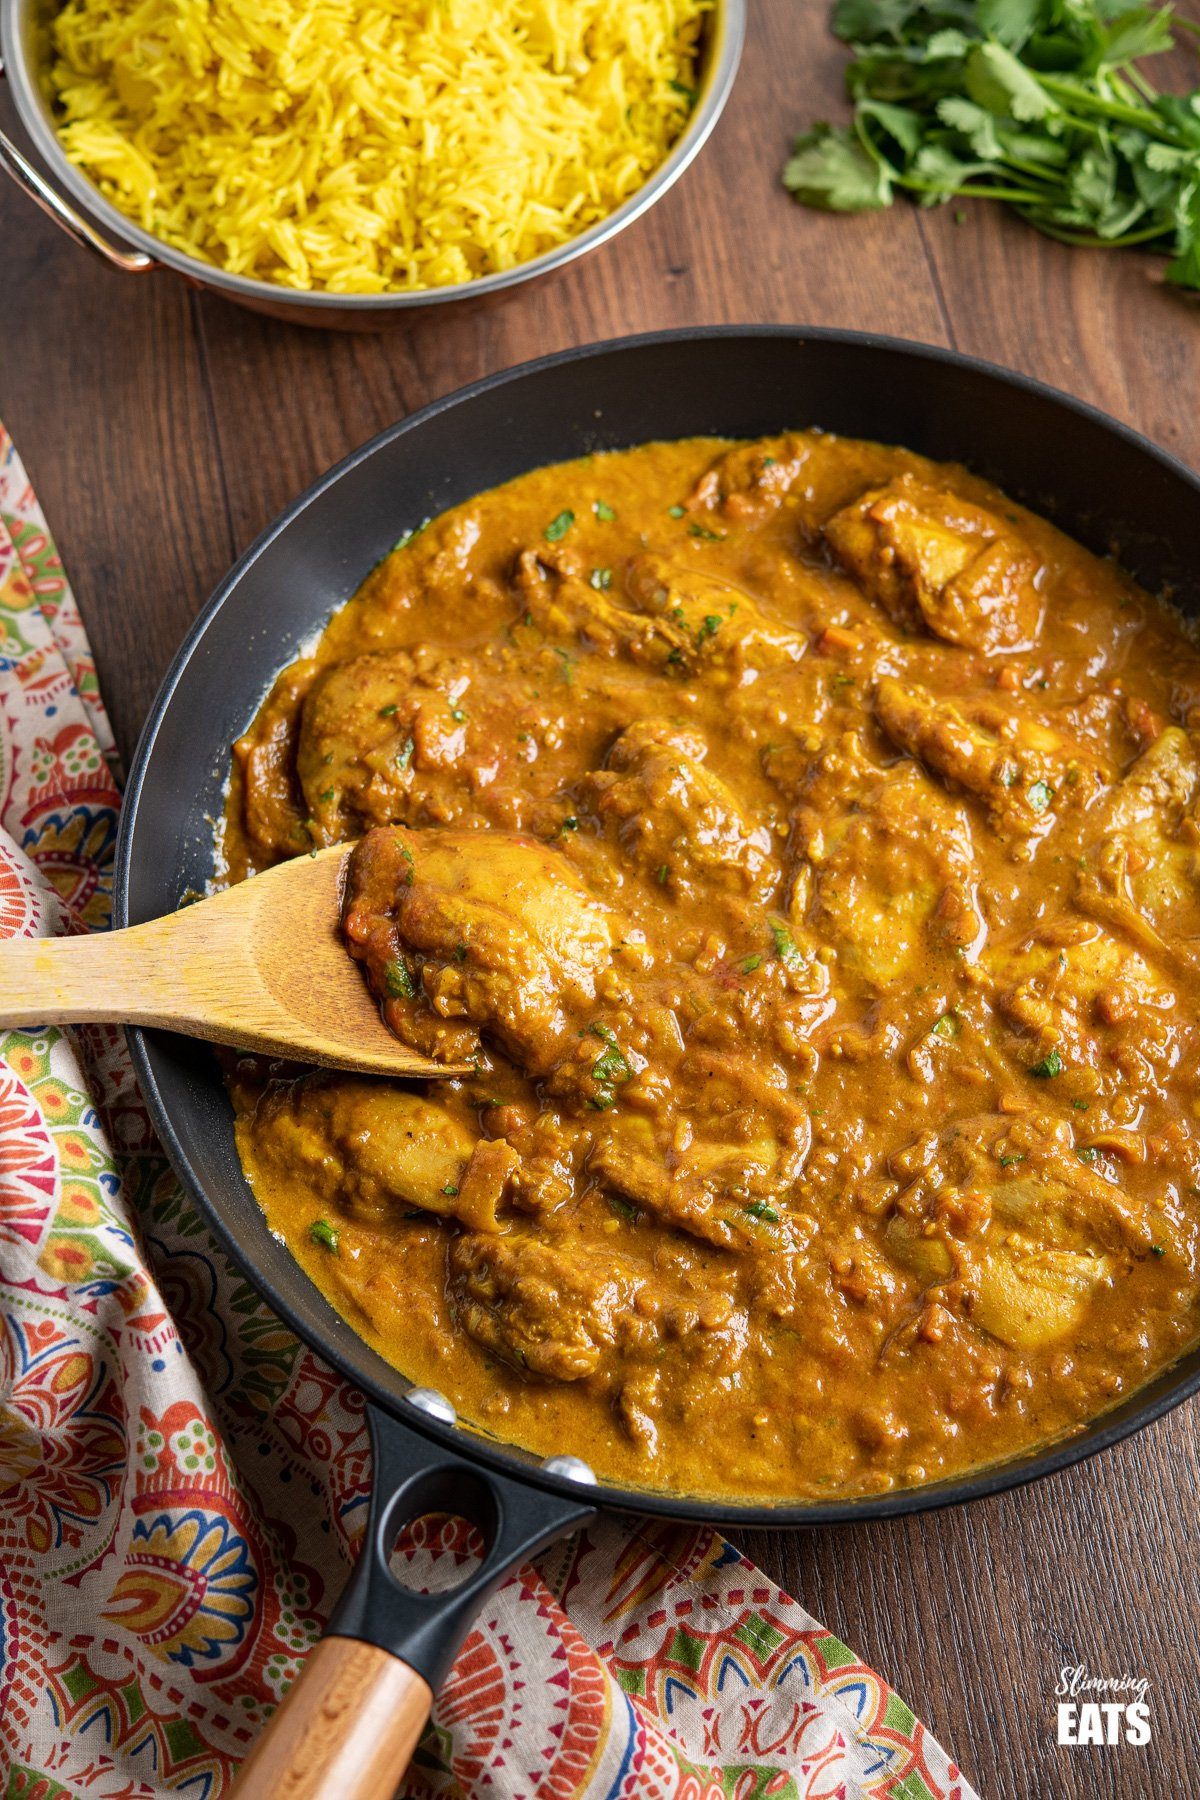 Chicken Dupiaza in black frying pan with wooden handle, pilau rice in background